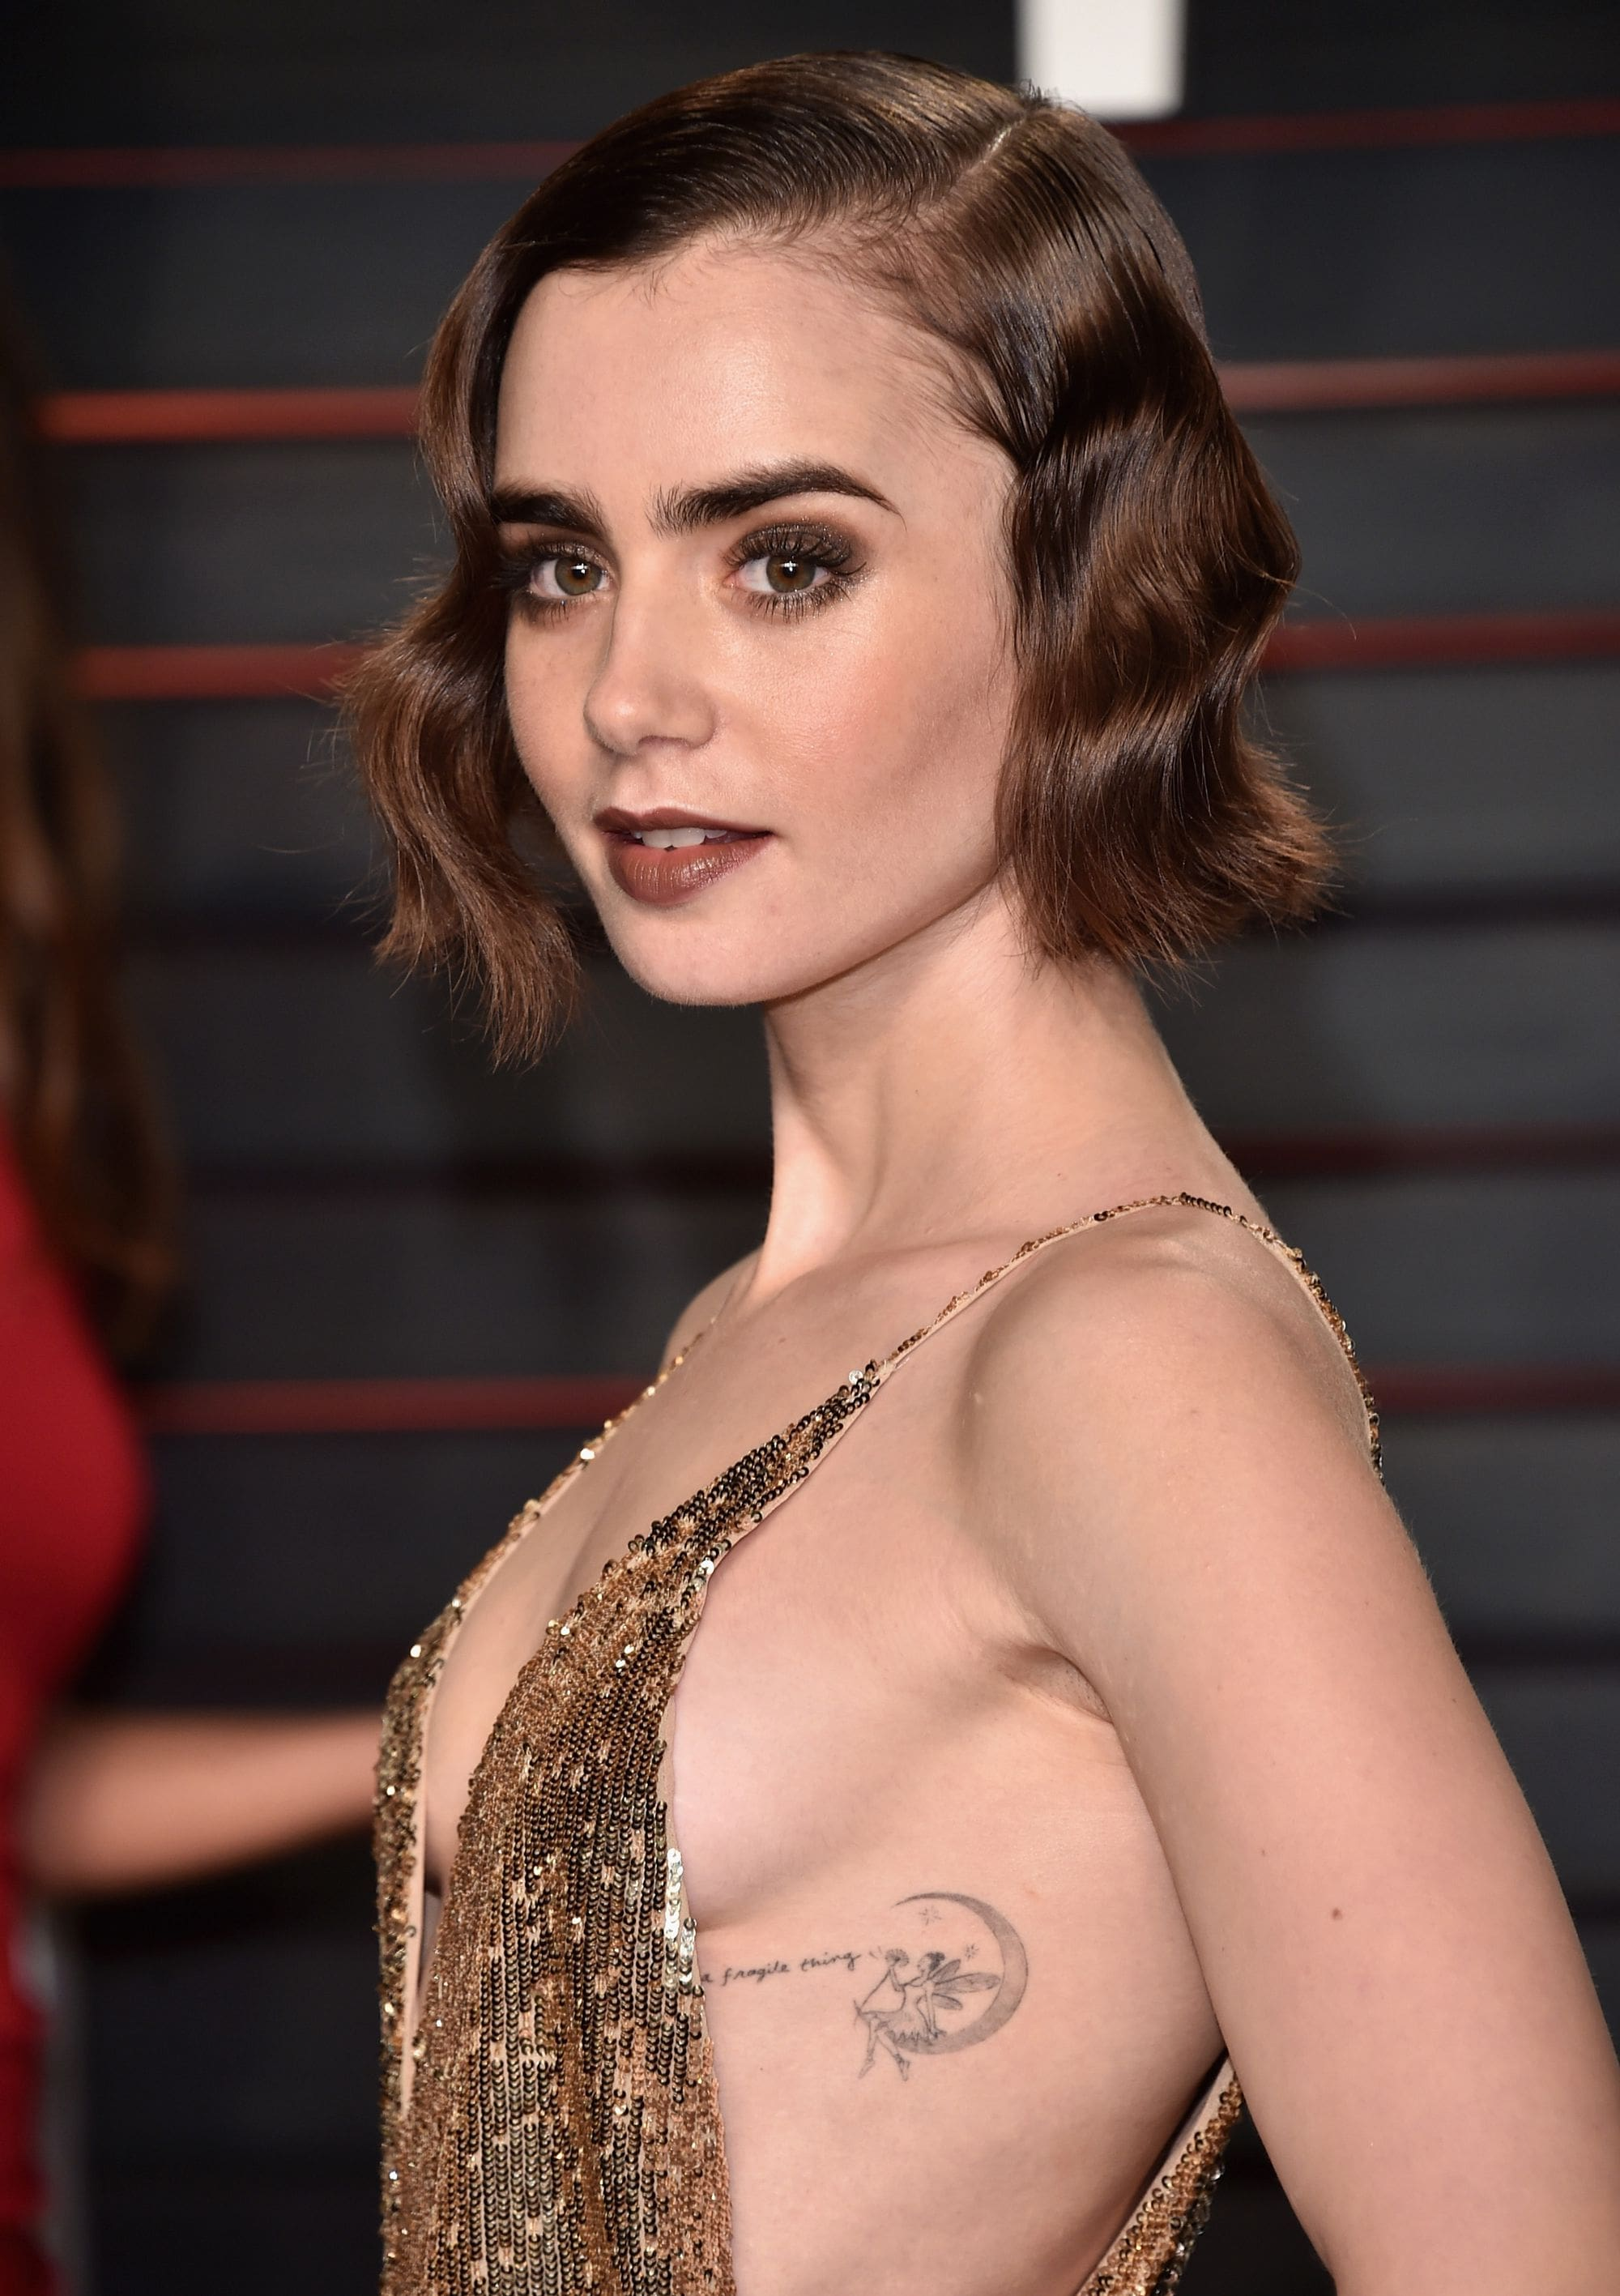 61 Hot Pictures Of Lily Collins Are Like A Slice Of Heaven